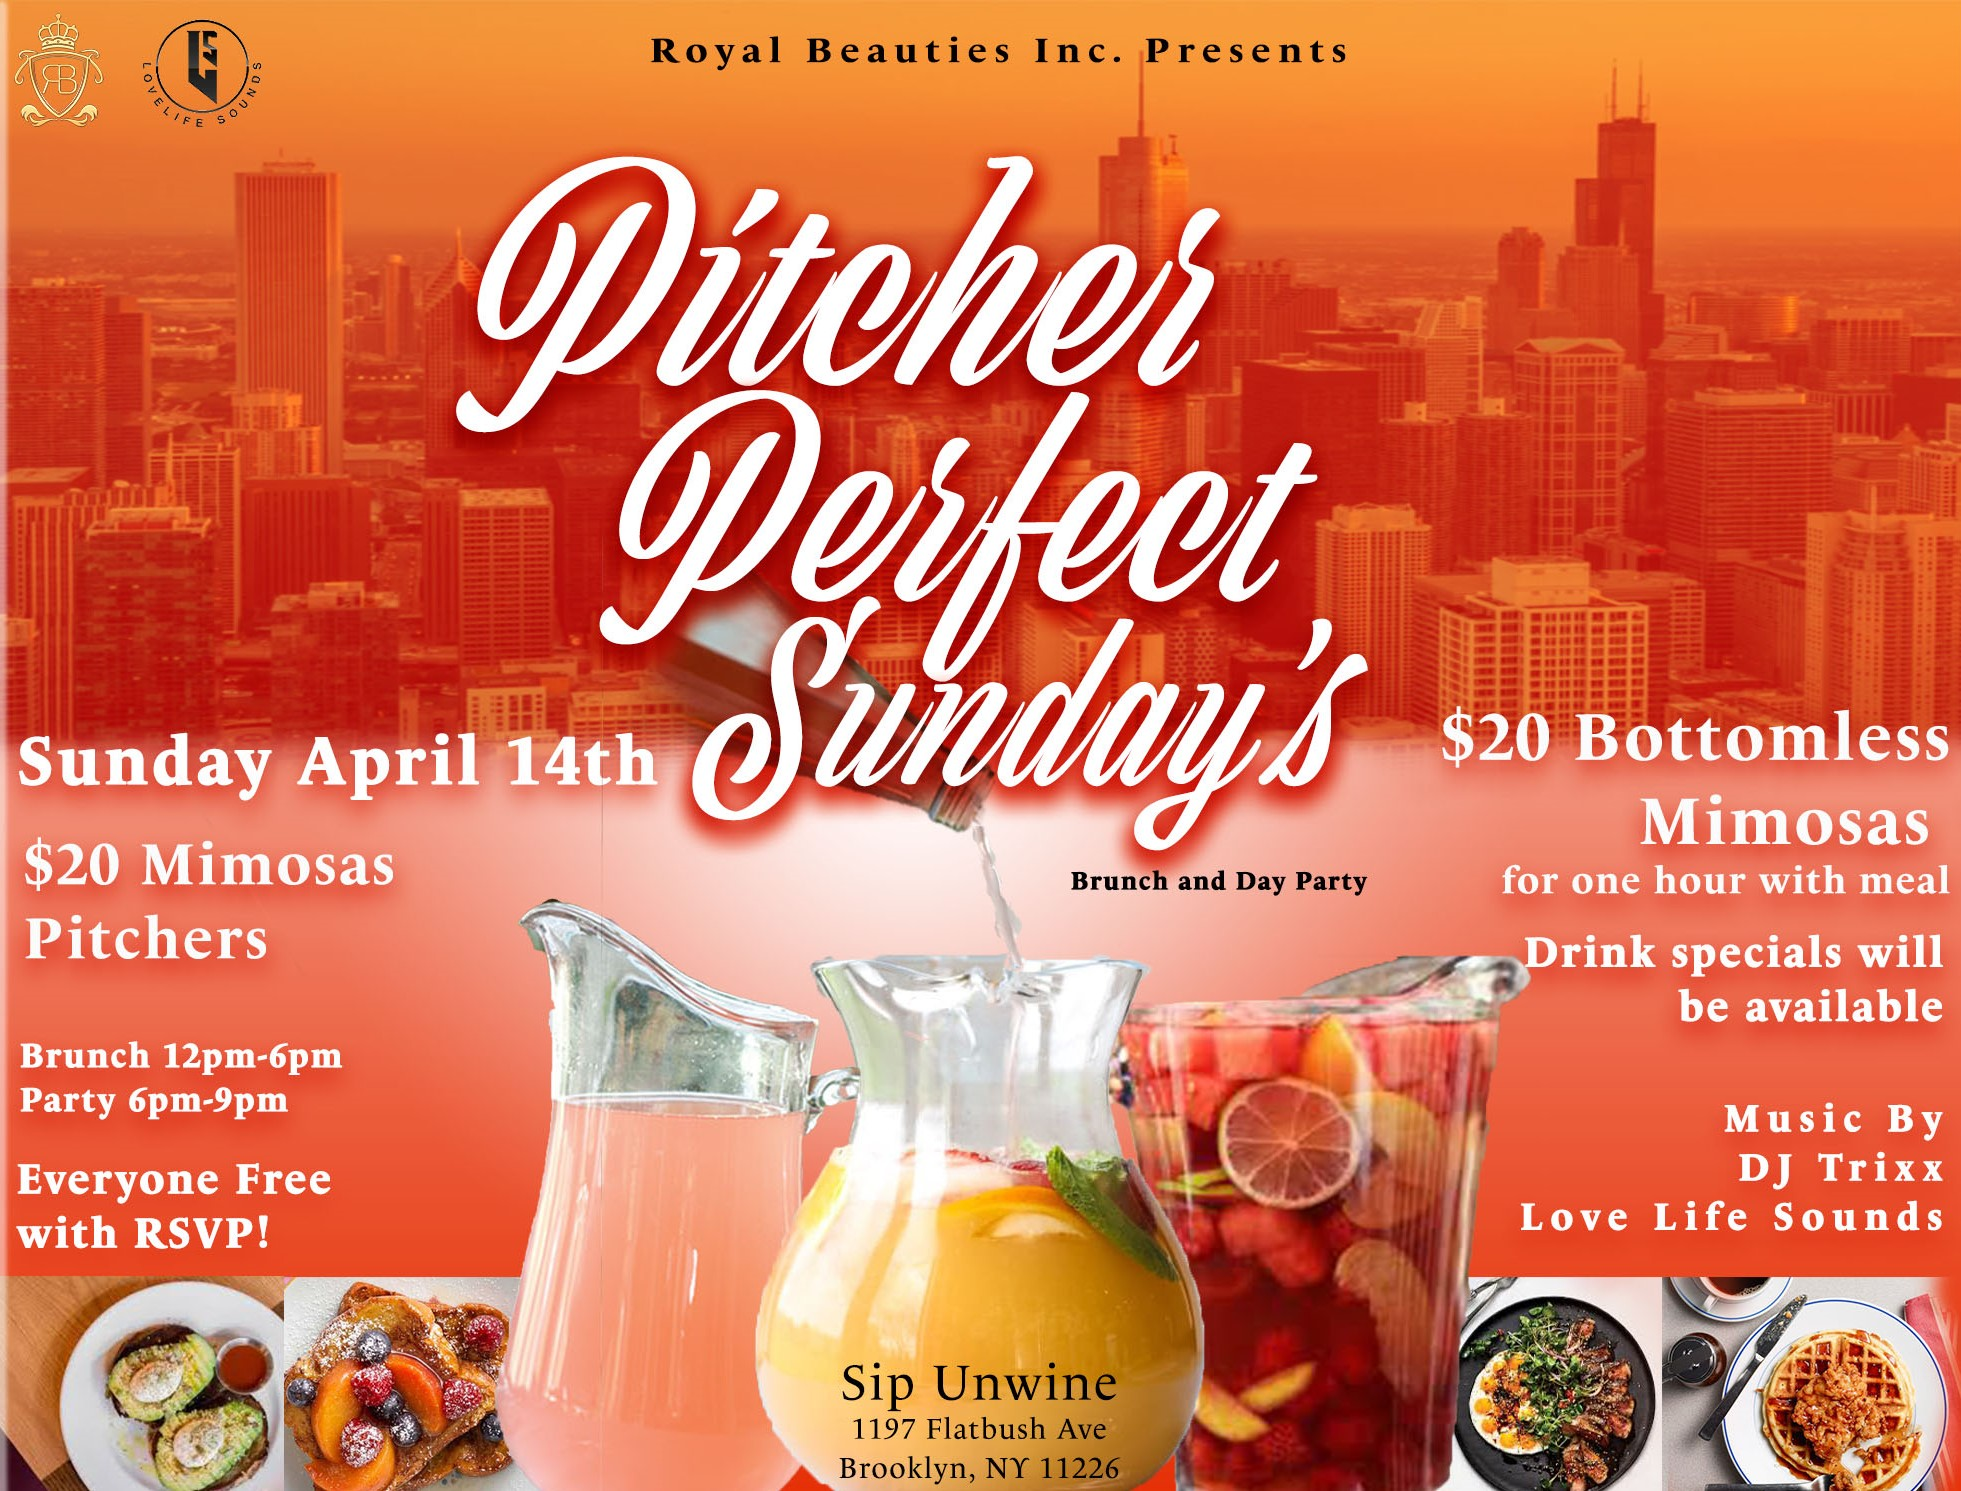 Check out Pitcher Perfect Sunday on Whim